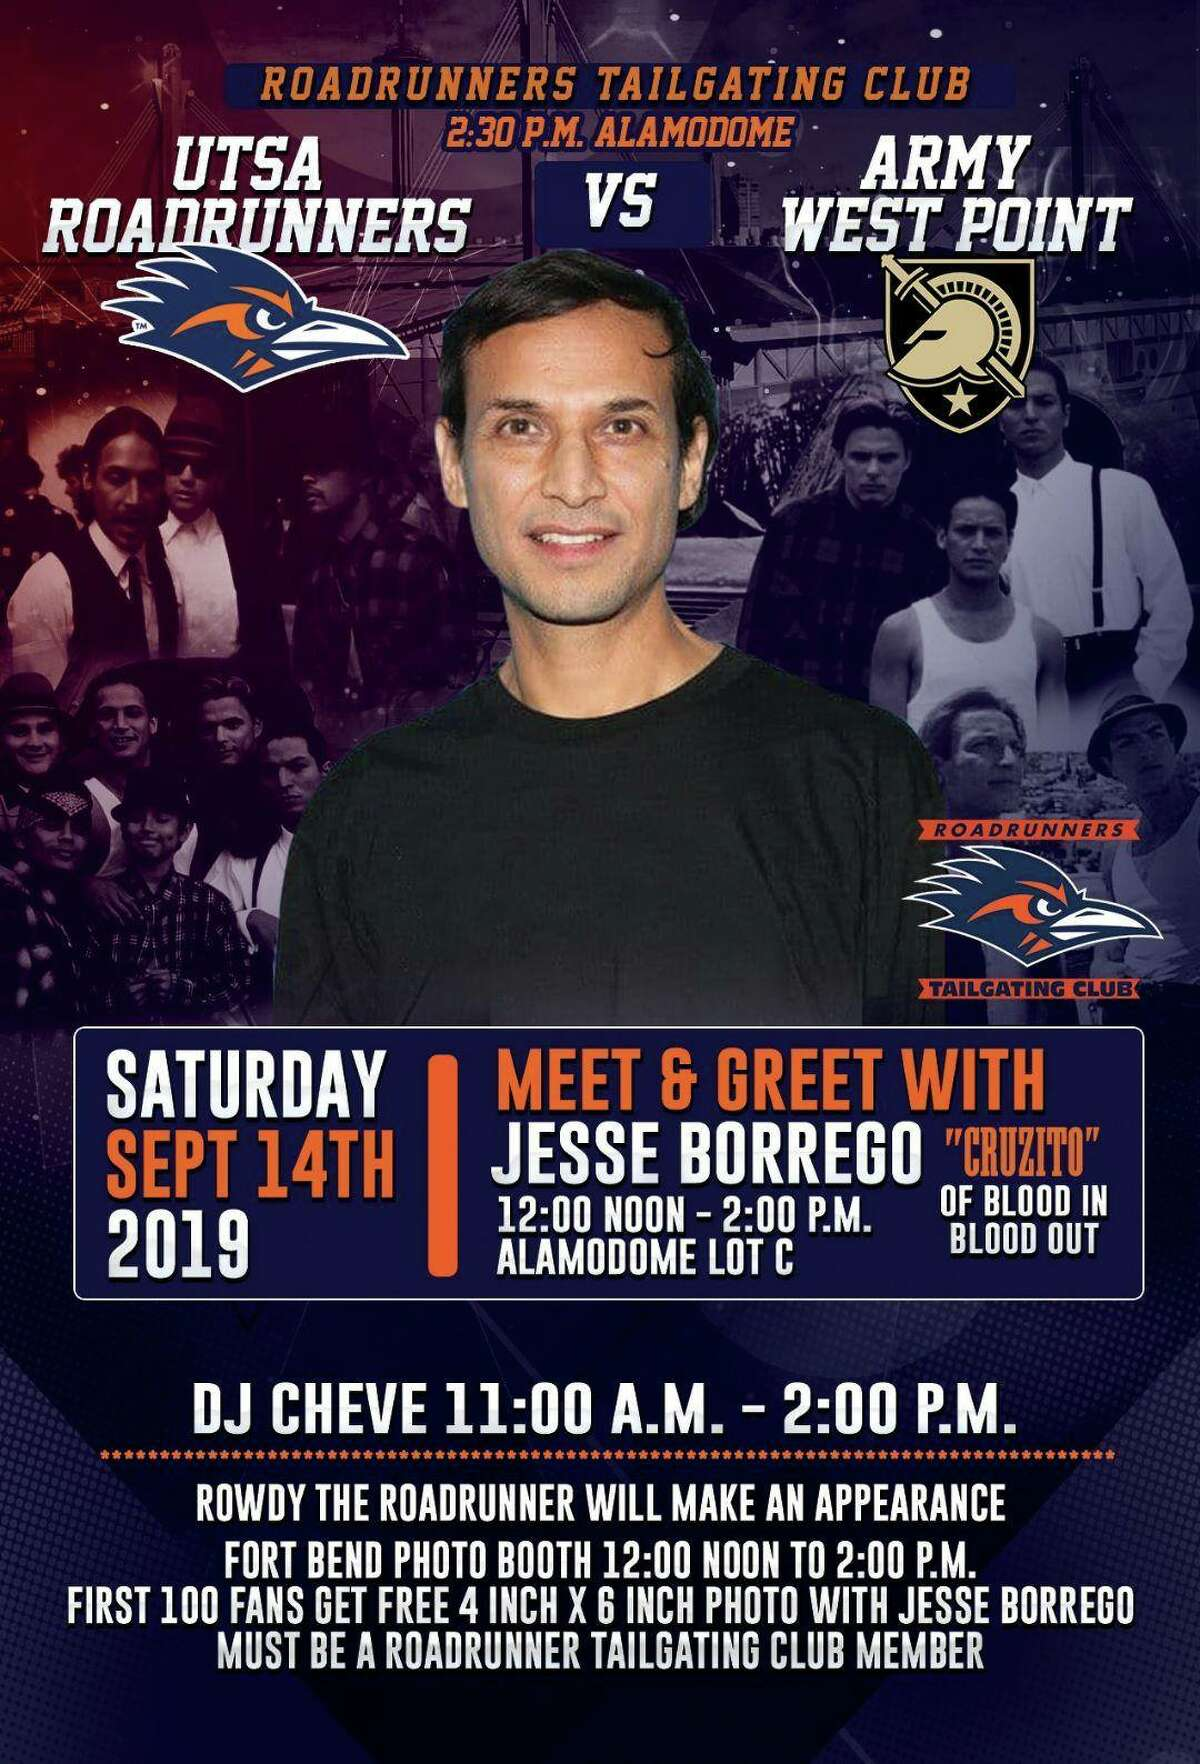 Rudy Juarez is organizing the inaugural Roadrunners Tailgating Club event in Lot C from noon to 2 p.m. on Sept. 14, when UTSA football plays Army West Point and the famous Fiesta character unites with YouTube comedienne La Tiny and actor Jesse Borrego.